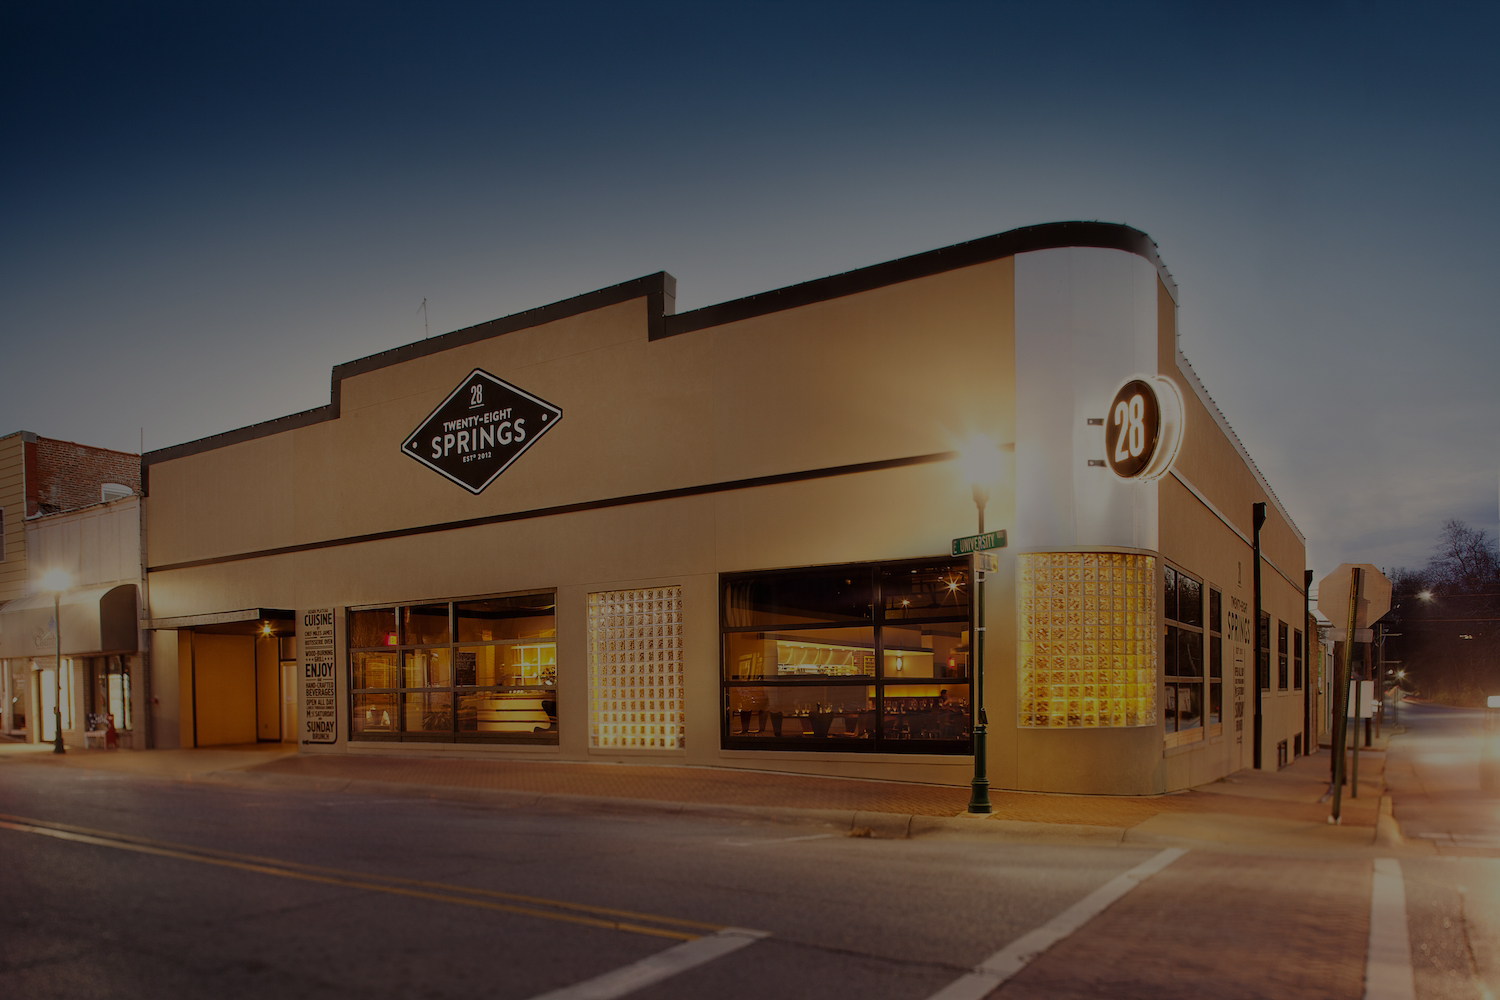 Search jobs at28 Springs Restaurant -